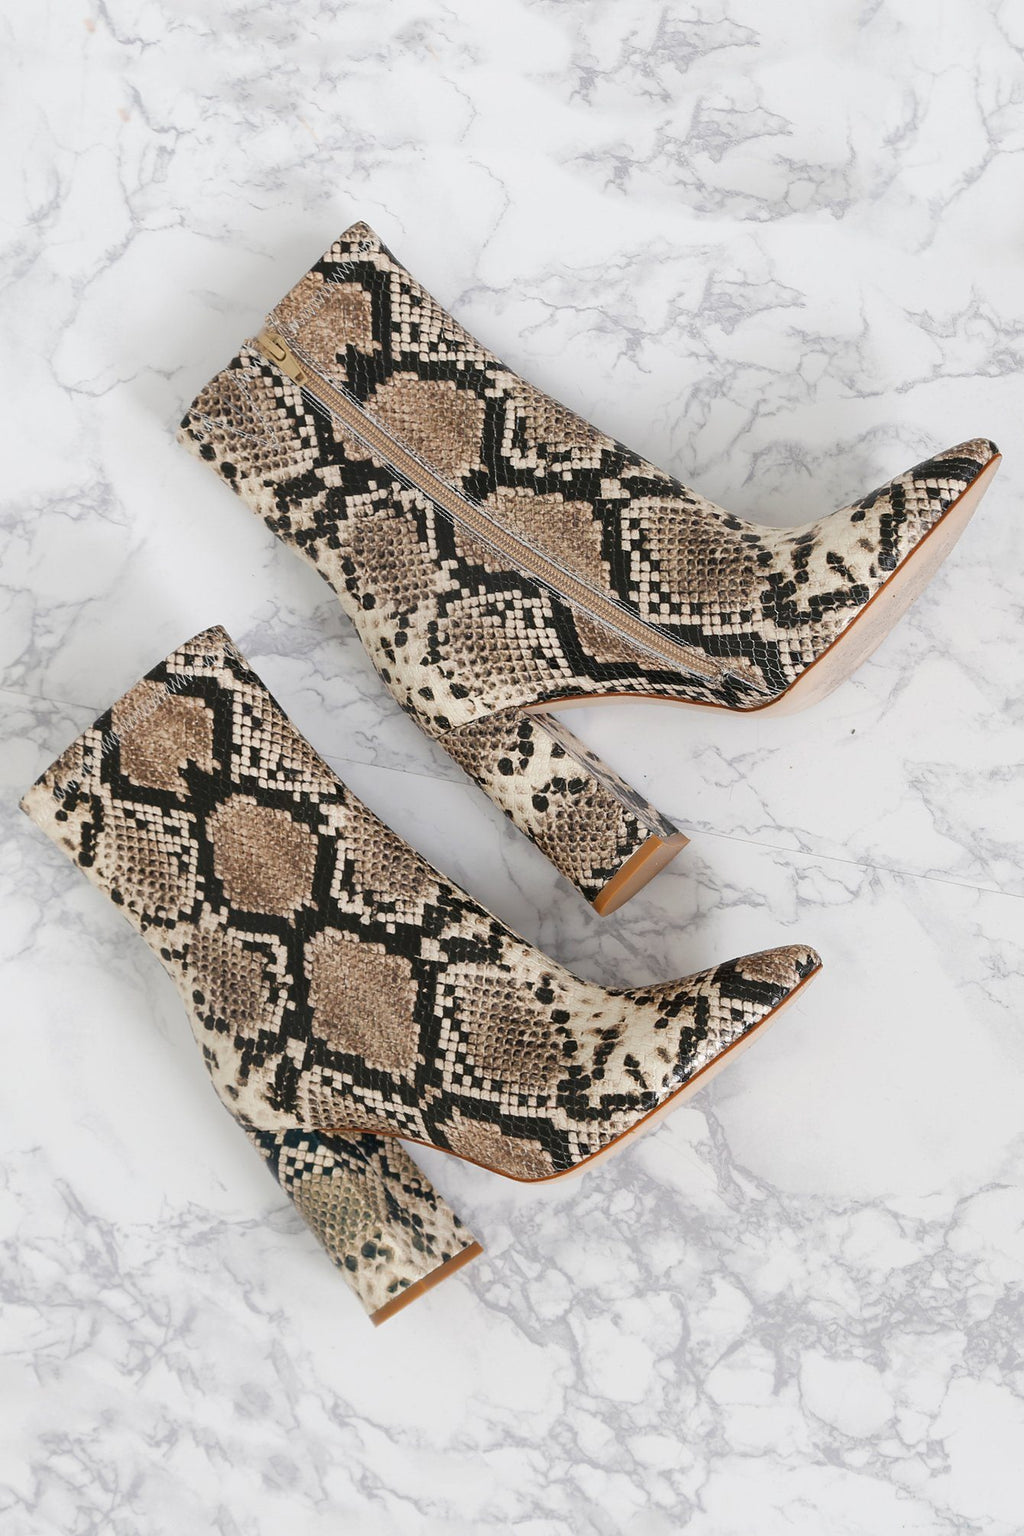 SCARLET EXCLUSIVE - JEFFREY CAMPBELL | Snake Siren Ankle Boot - Taupe/ Black